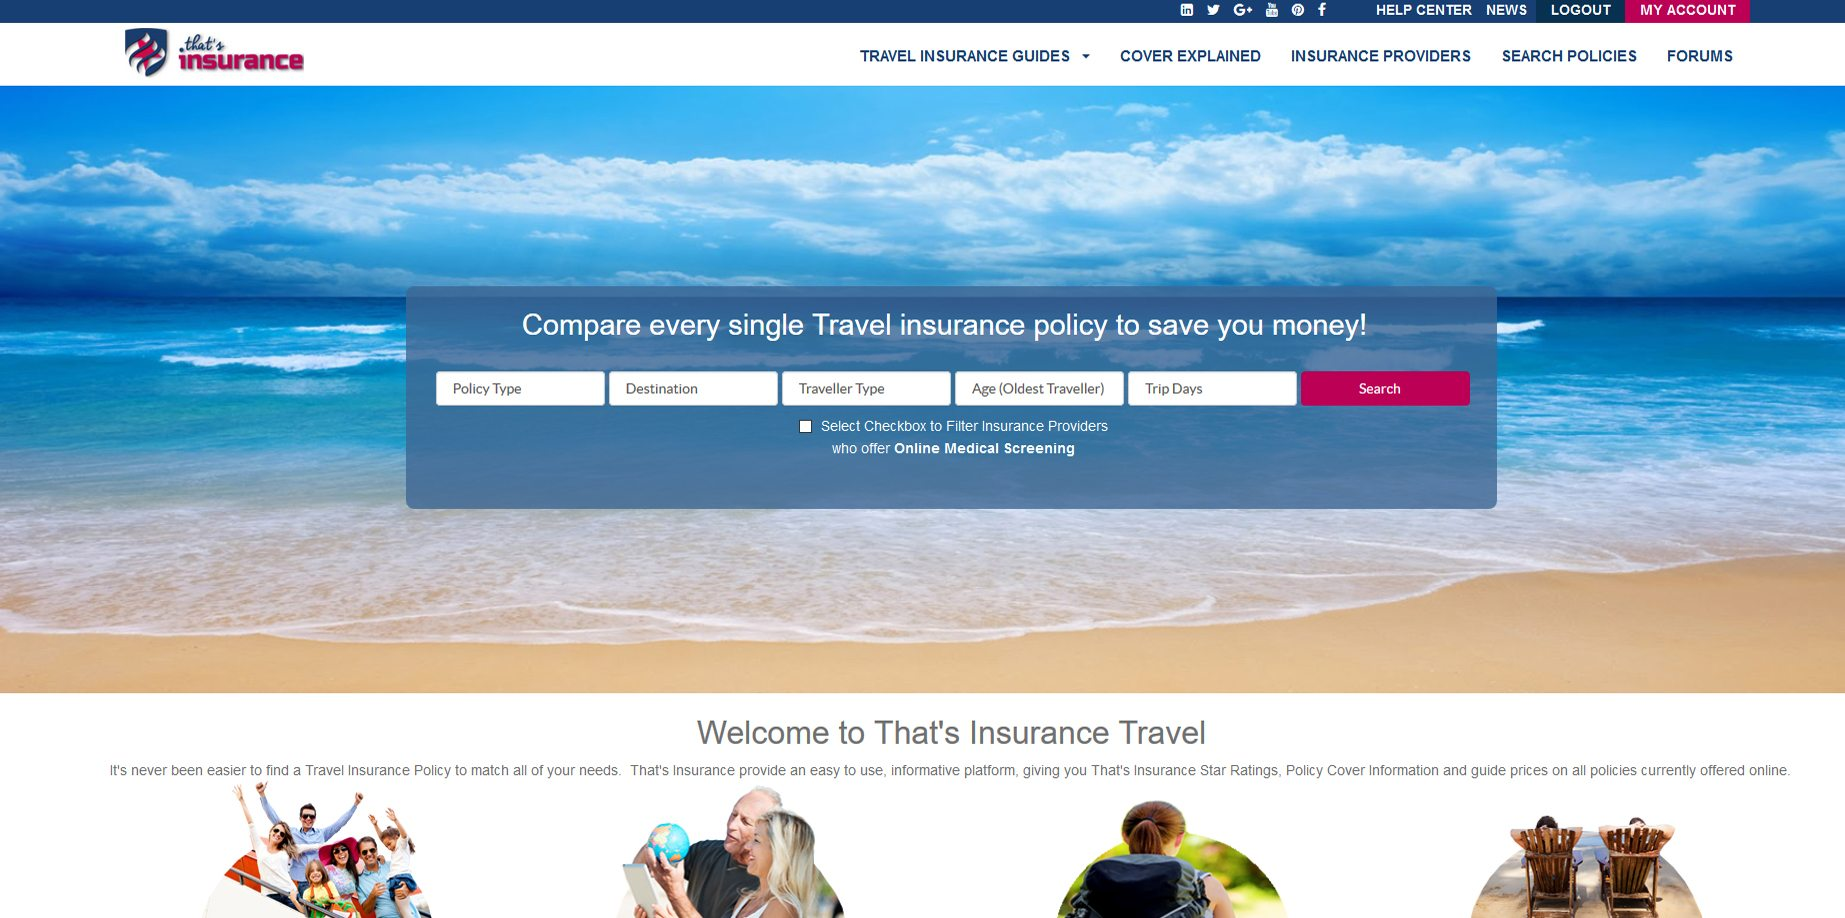 Thats Insurance - Search for a Travel Insurance Policy